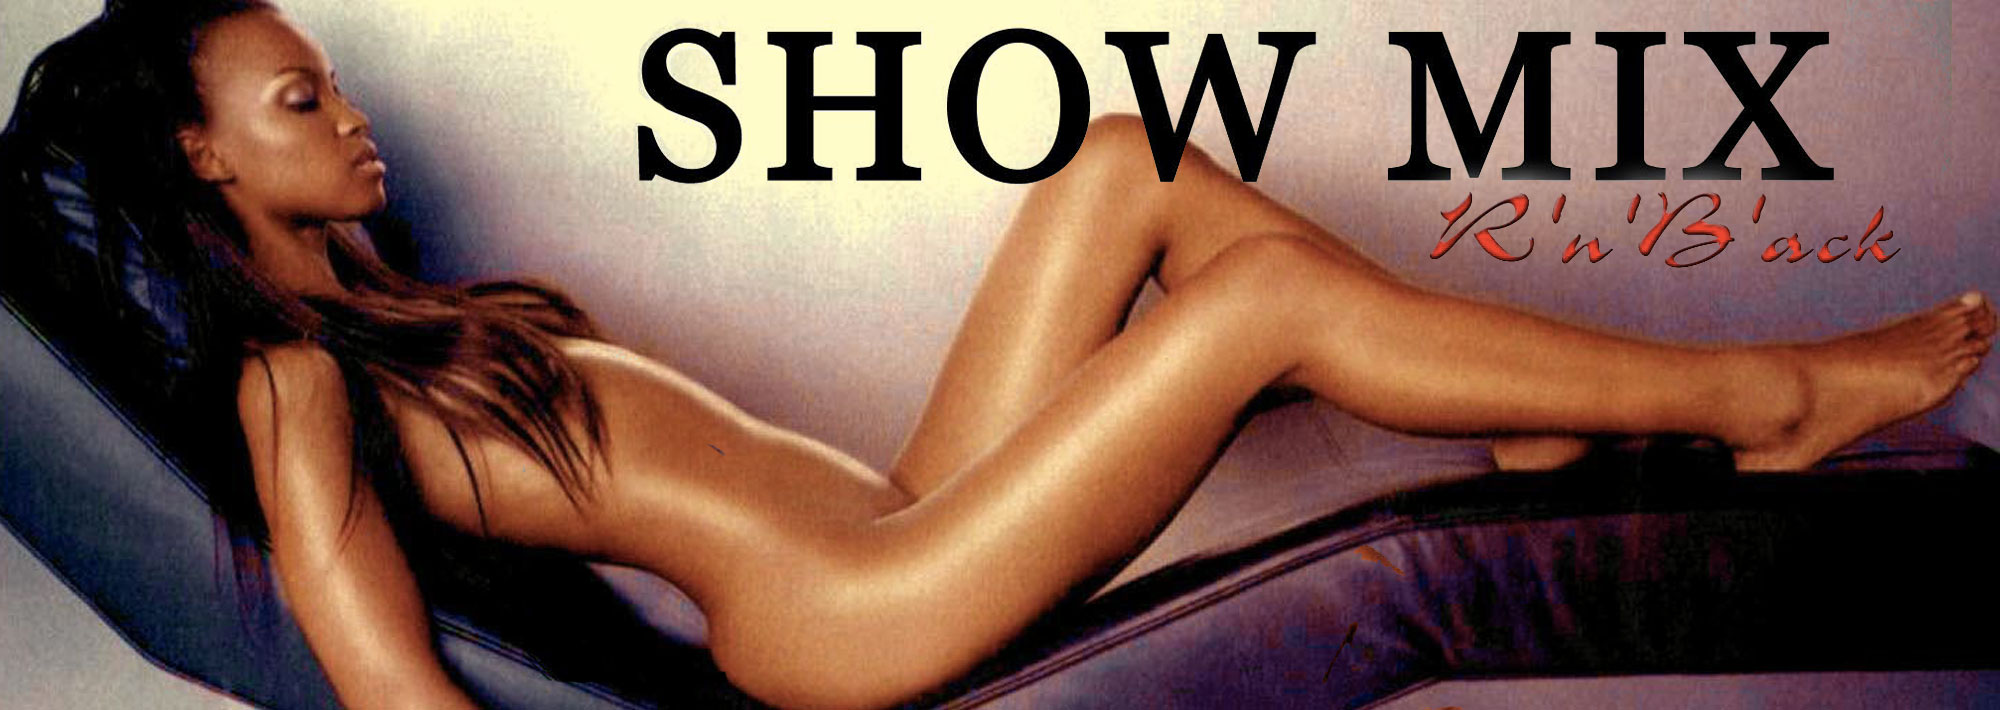 Show Mix R'n'Back 2 by T.Boon